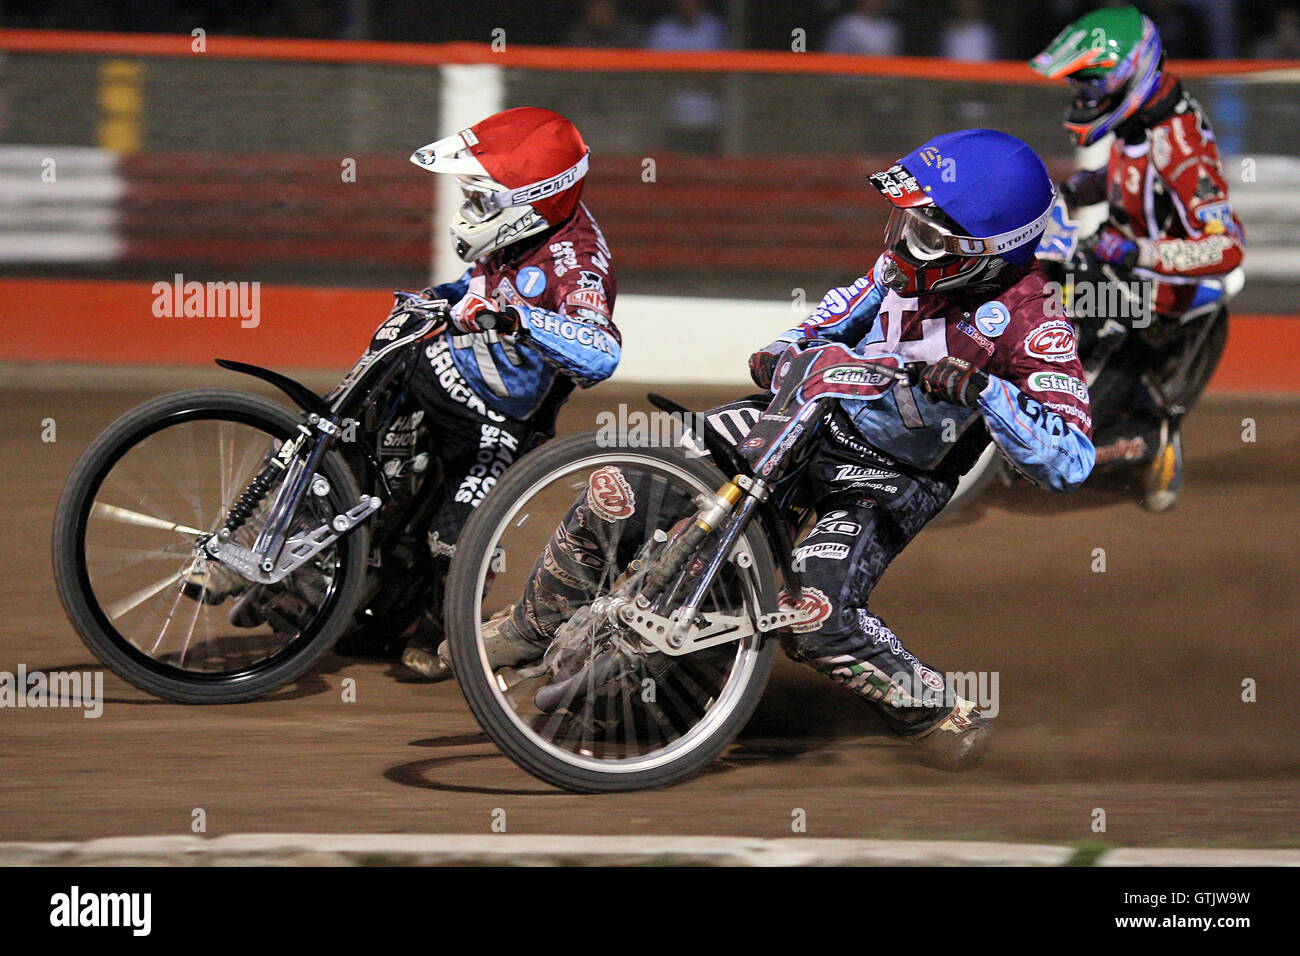 Heat 10: Lee Richardson (red), Partick Hougaard (green) and Joonas Kylmakorpi - Lakeside Hammers vs Belle Vue Aces - Stock Image